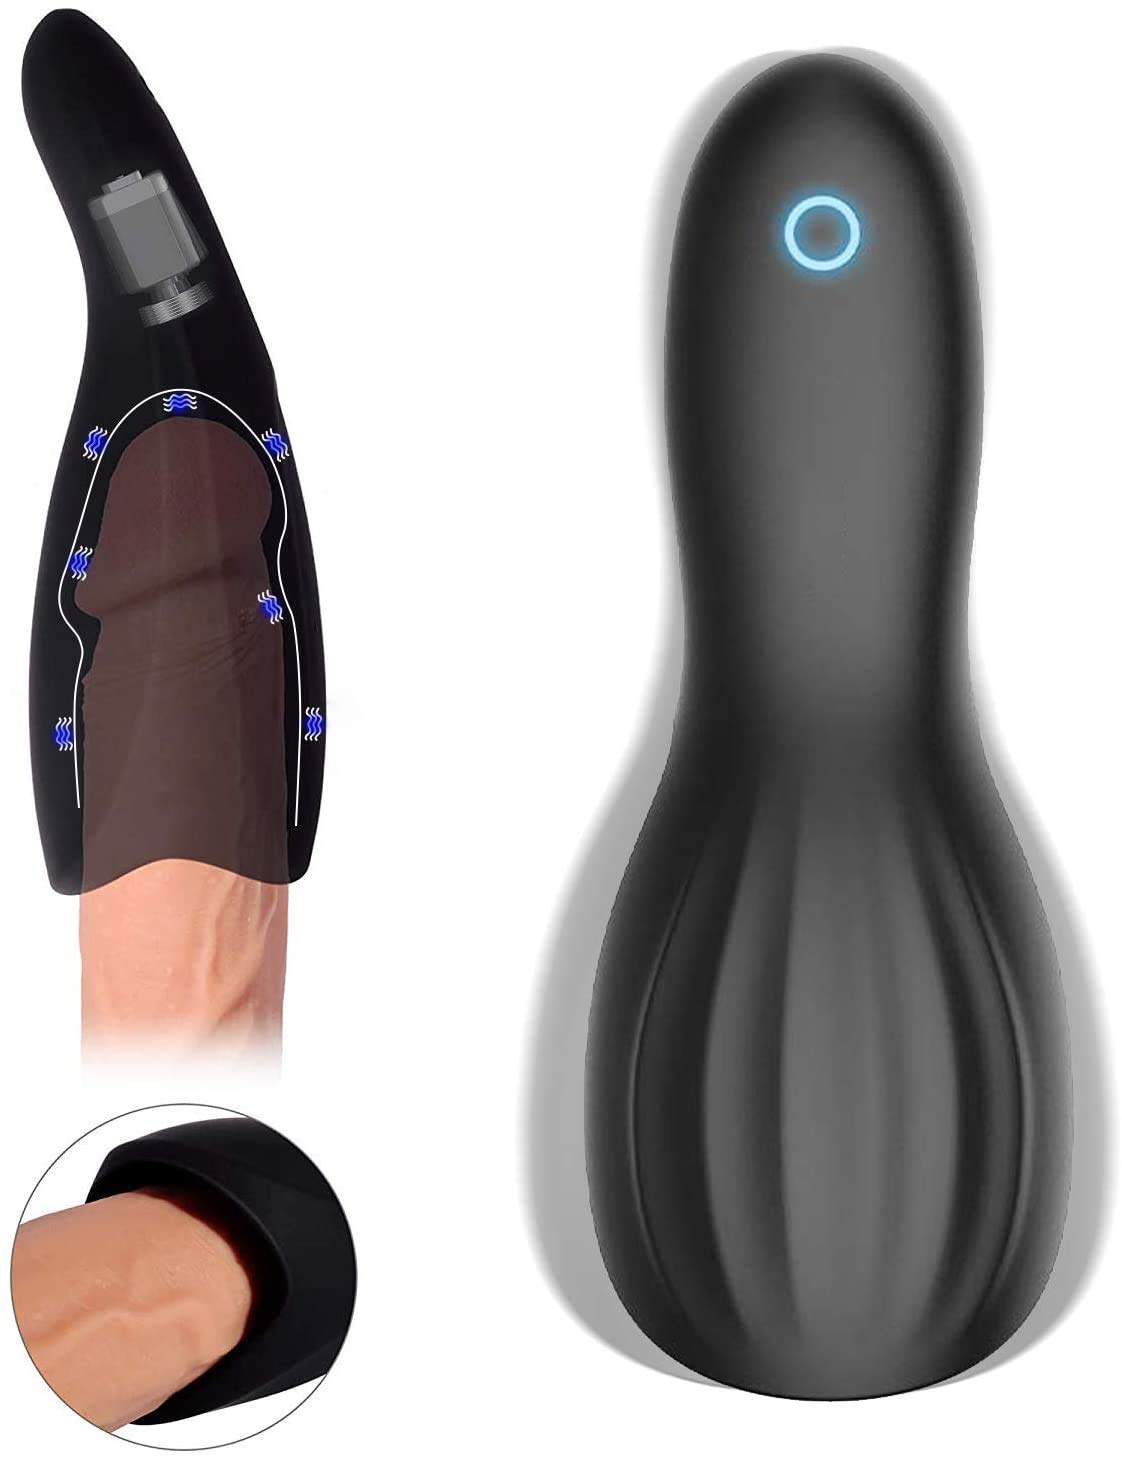 Sexy Toysfor Man Silicone 100% Waterproof Fäke Pussies Toy for Intense Stimu lati on Lubricant Six Pleasure for Men for Men Sixy Underwear for Men T-Shirtfor Men Sixy in Life